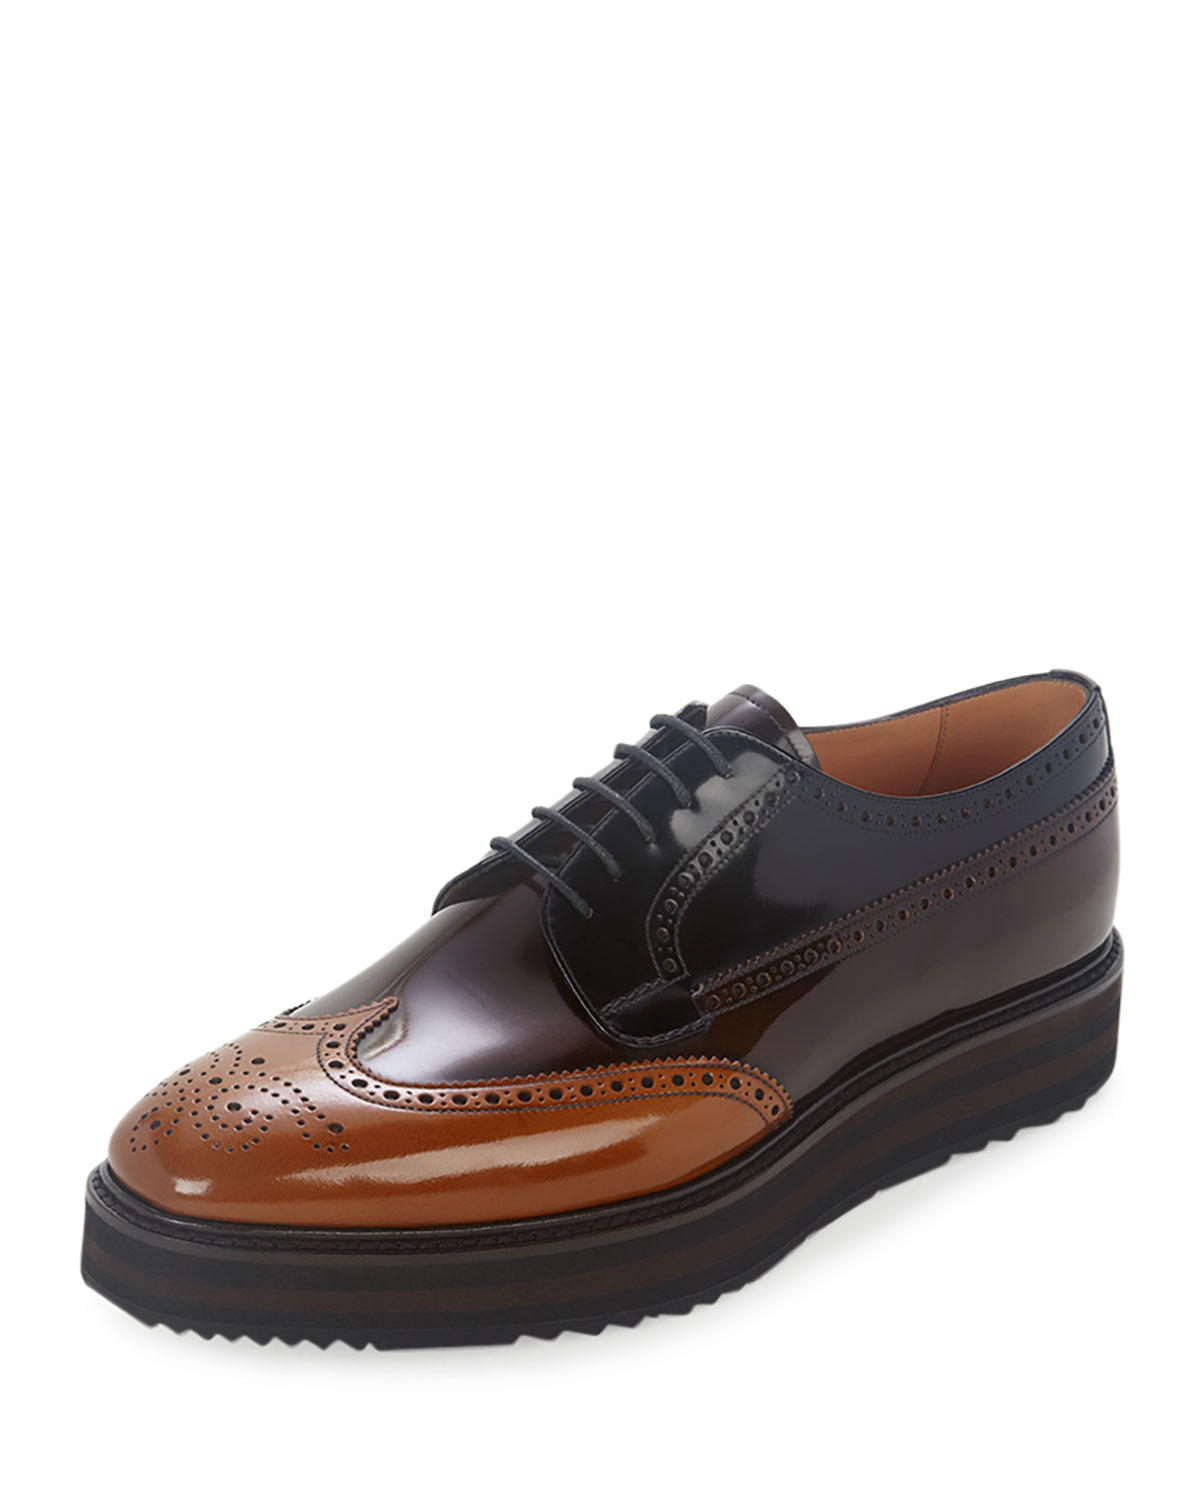 Where To Buy Bally Shoes